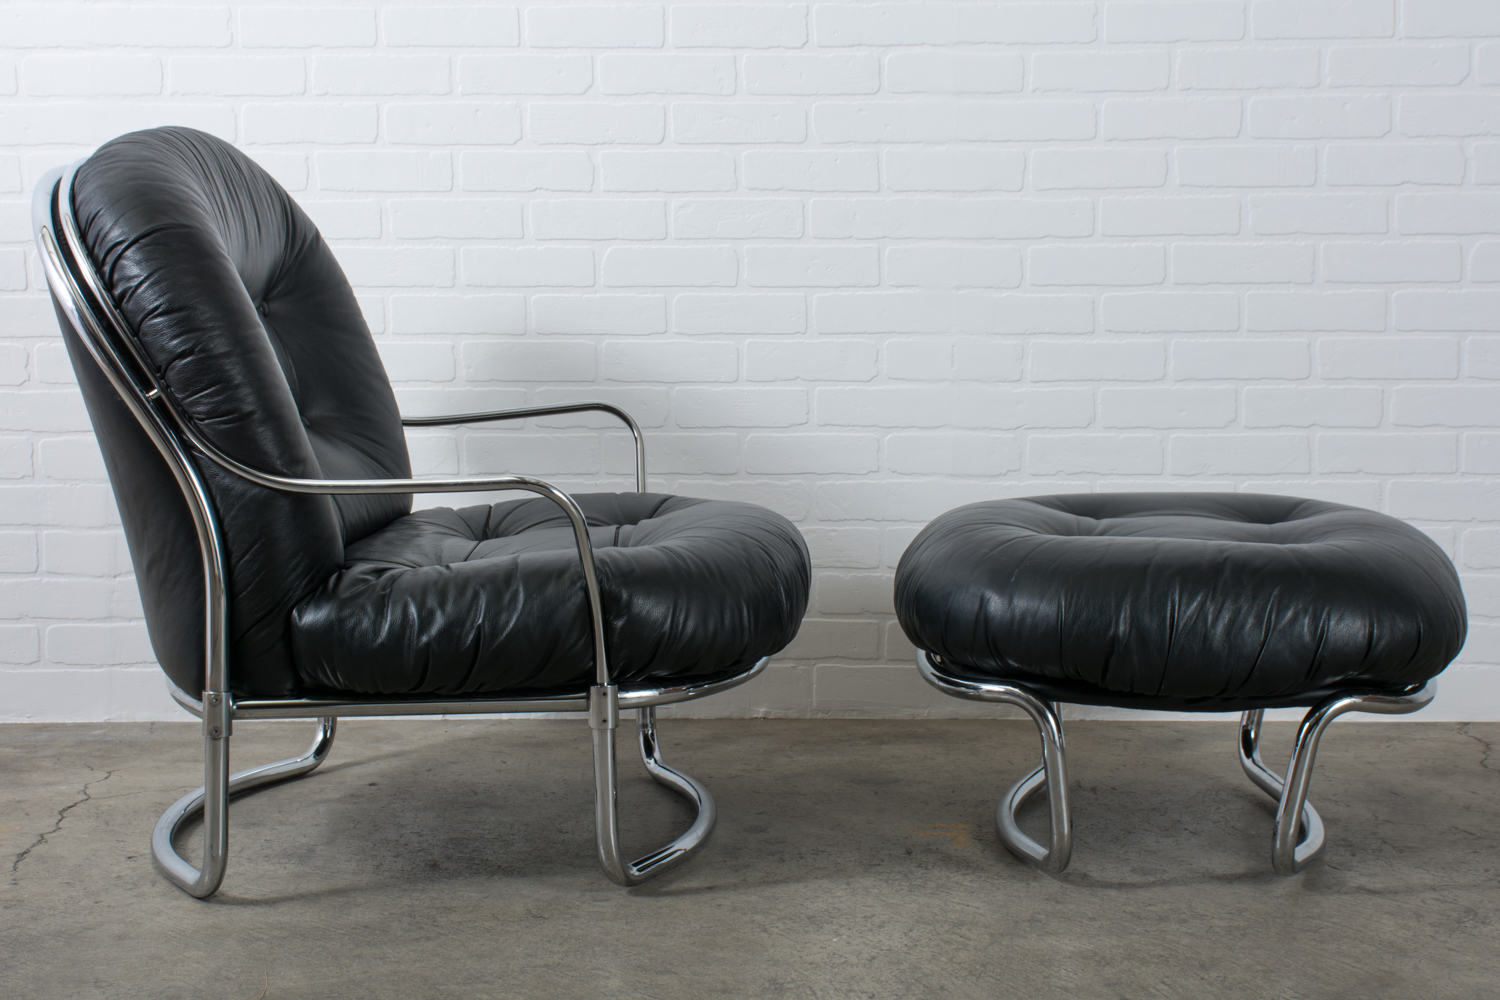 Black Leather Lounge Chair Carlo Di Carli Black Leather Lounge Chair And Ottoman Italy 1960s